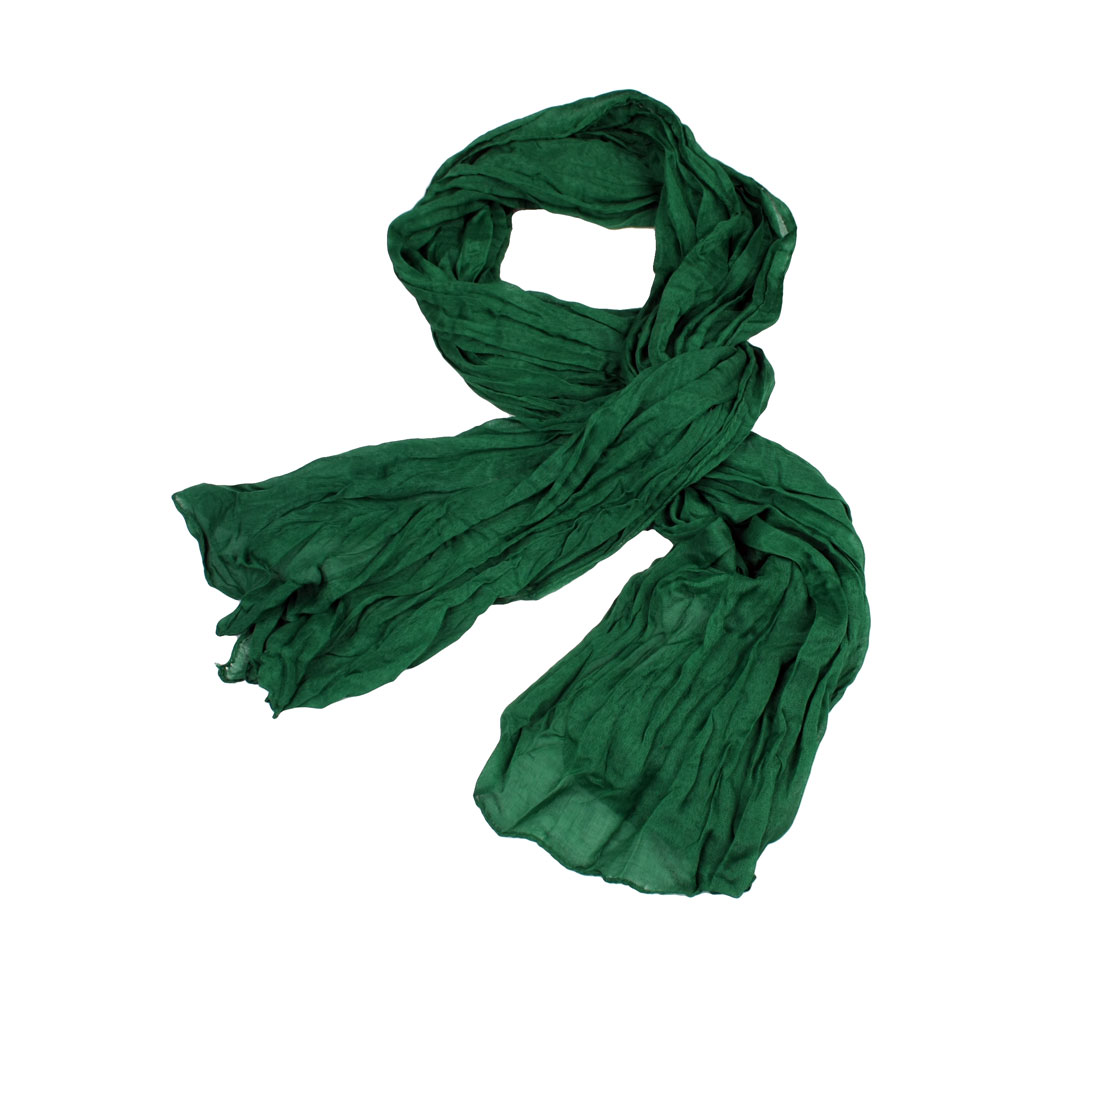 Green Wrinkle Ruffled Style Thin Scarf Wrap Shawl for Woman